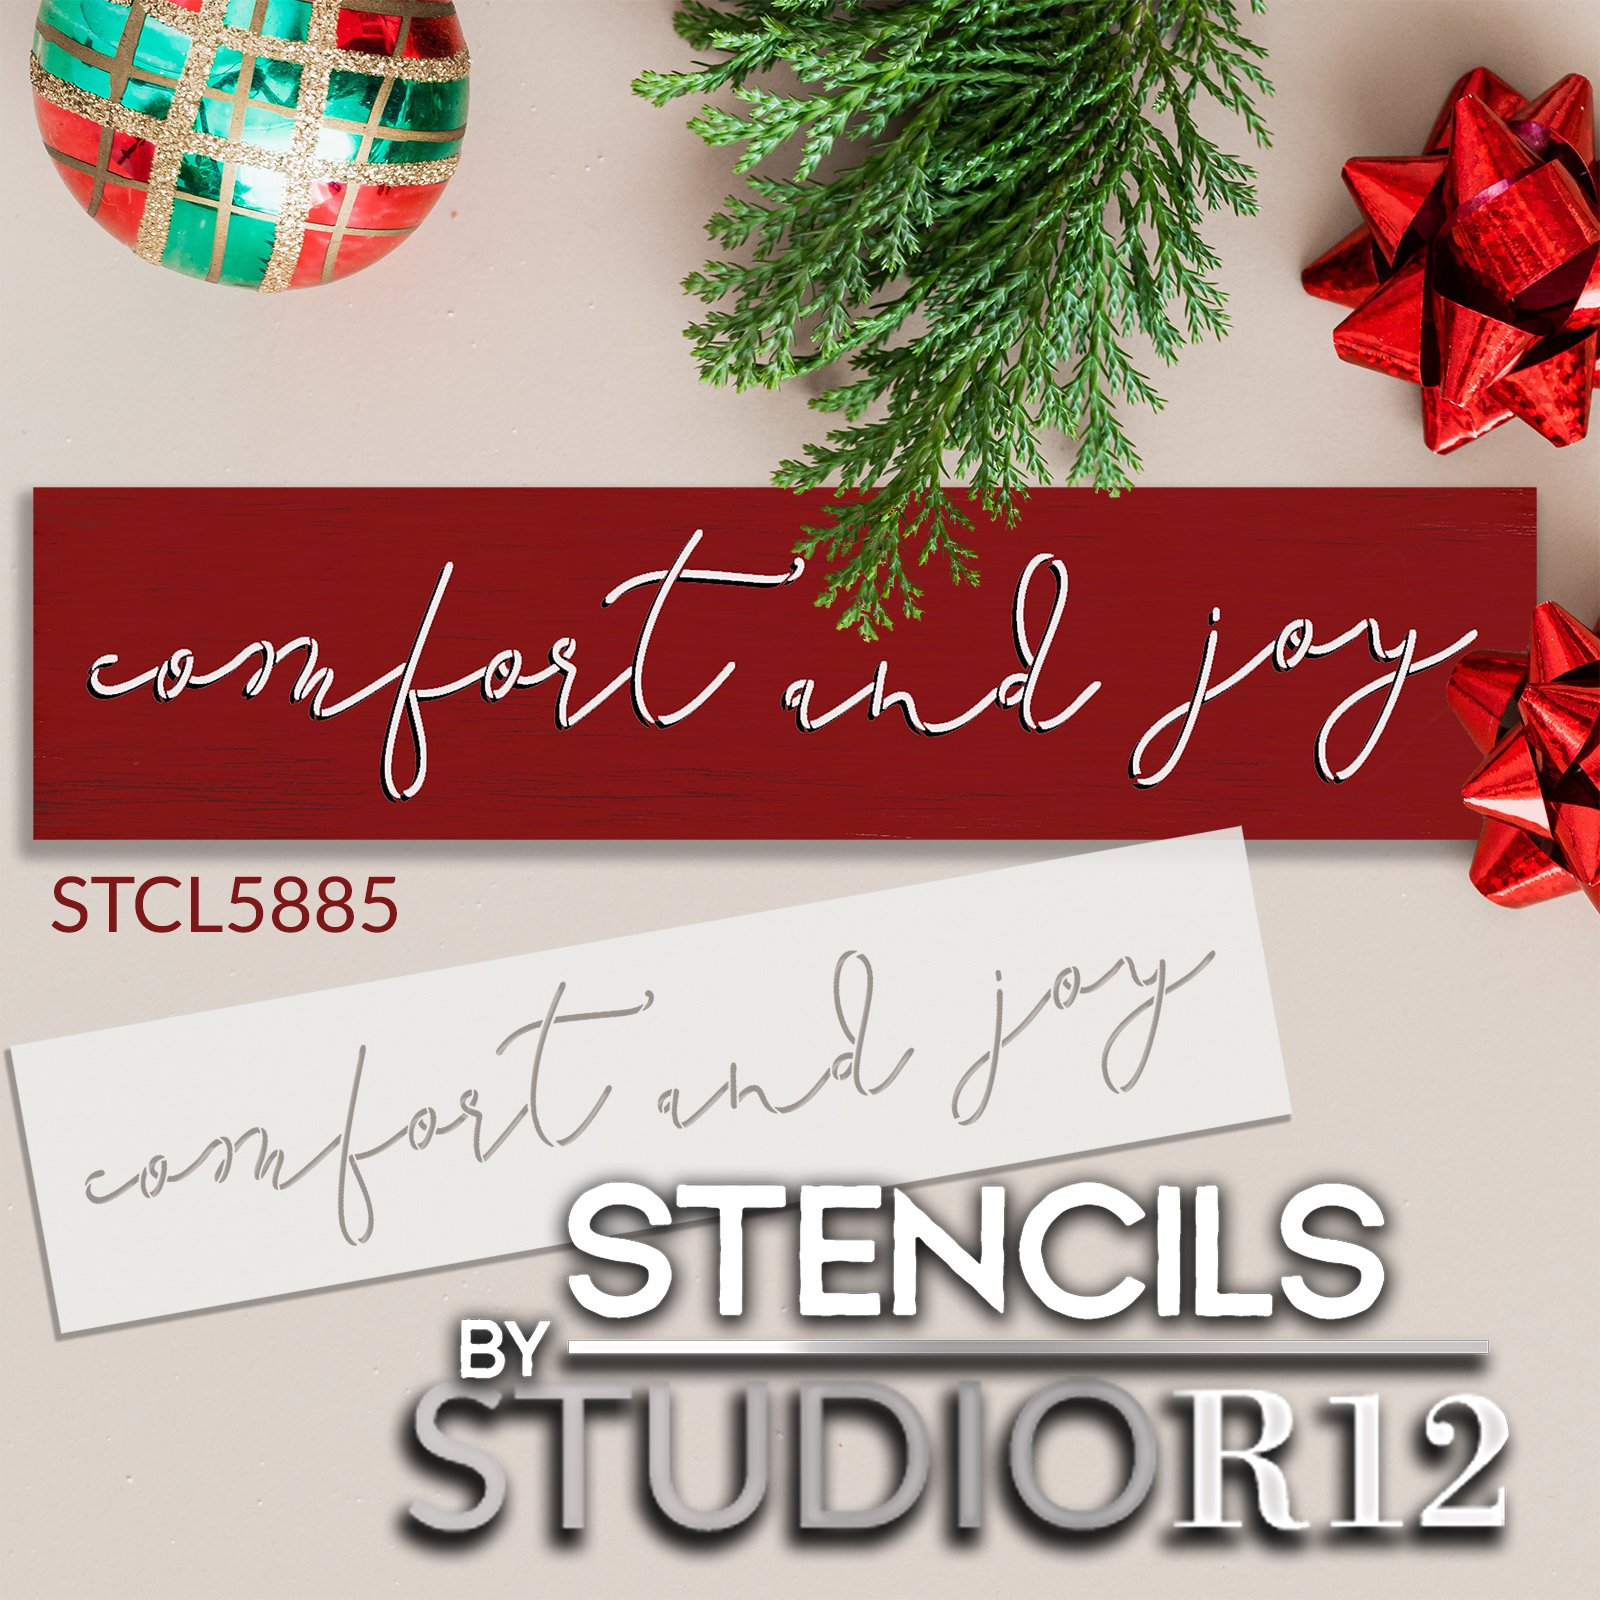 Comfort and Joy Stencil by StudioR12   Craft DIY Christmas Holiday Home Decor   Paint Cursive Script Wood Sign   Reusable Mylar Template   Select Size